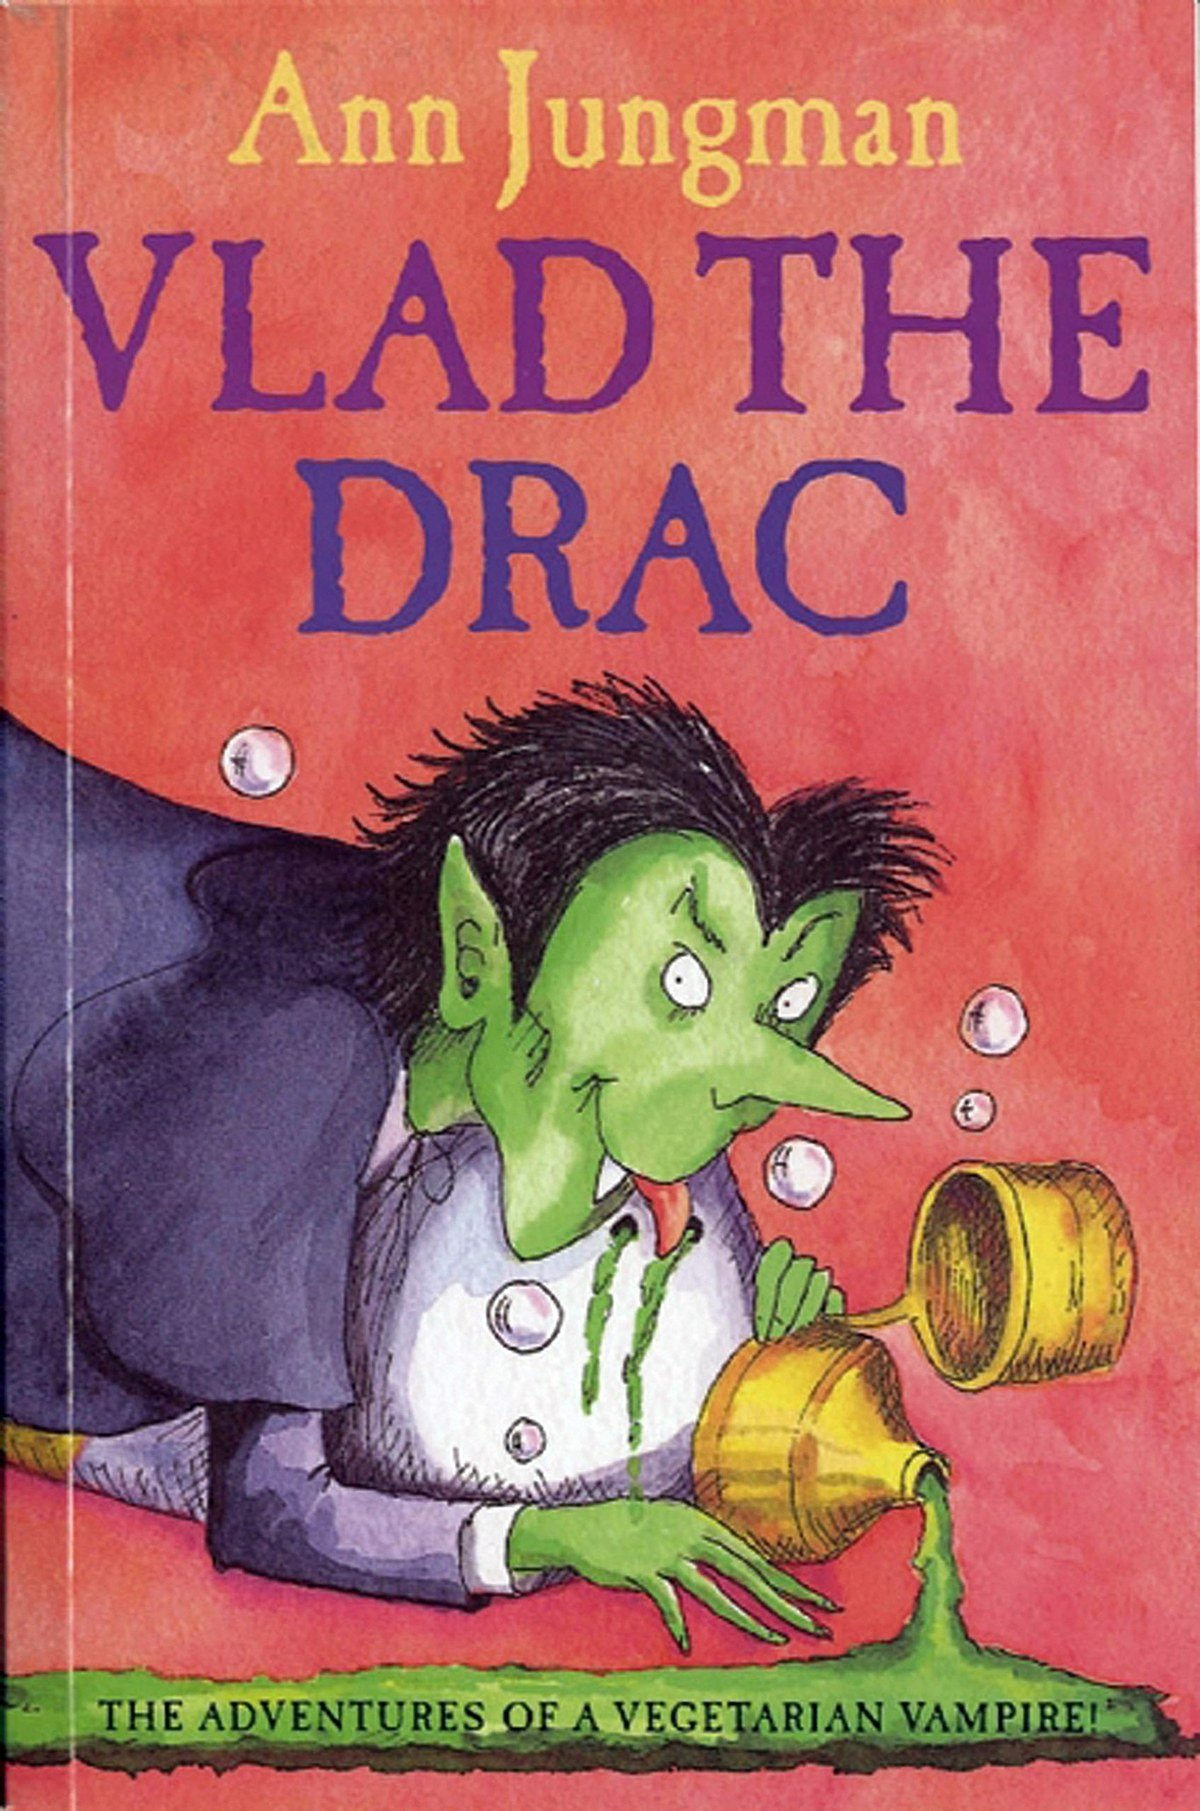 11 11 12 More Childhood Books You've Probably Forgotten About